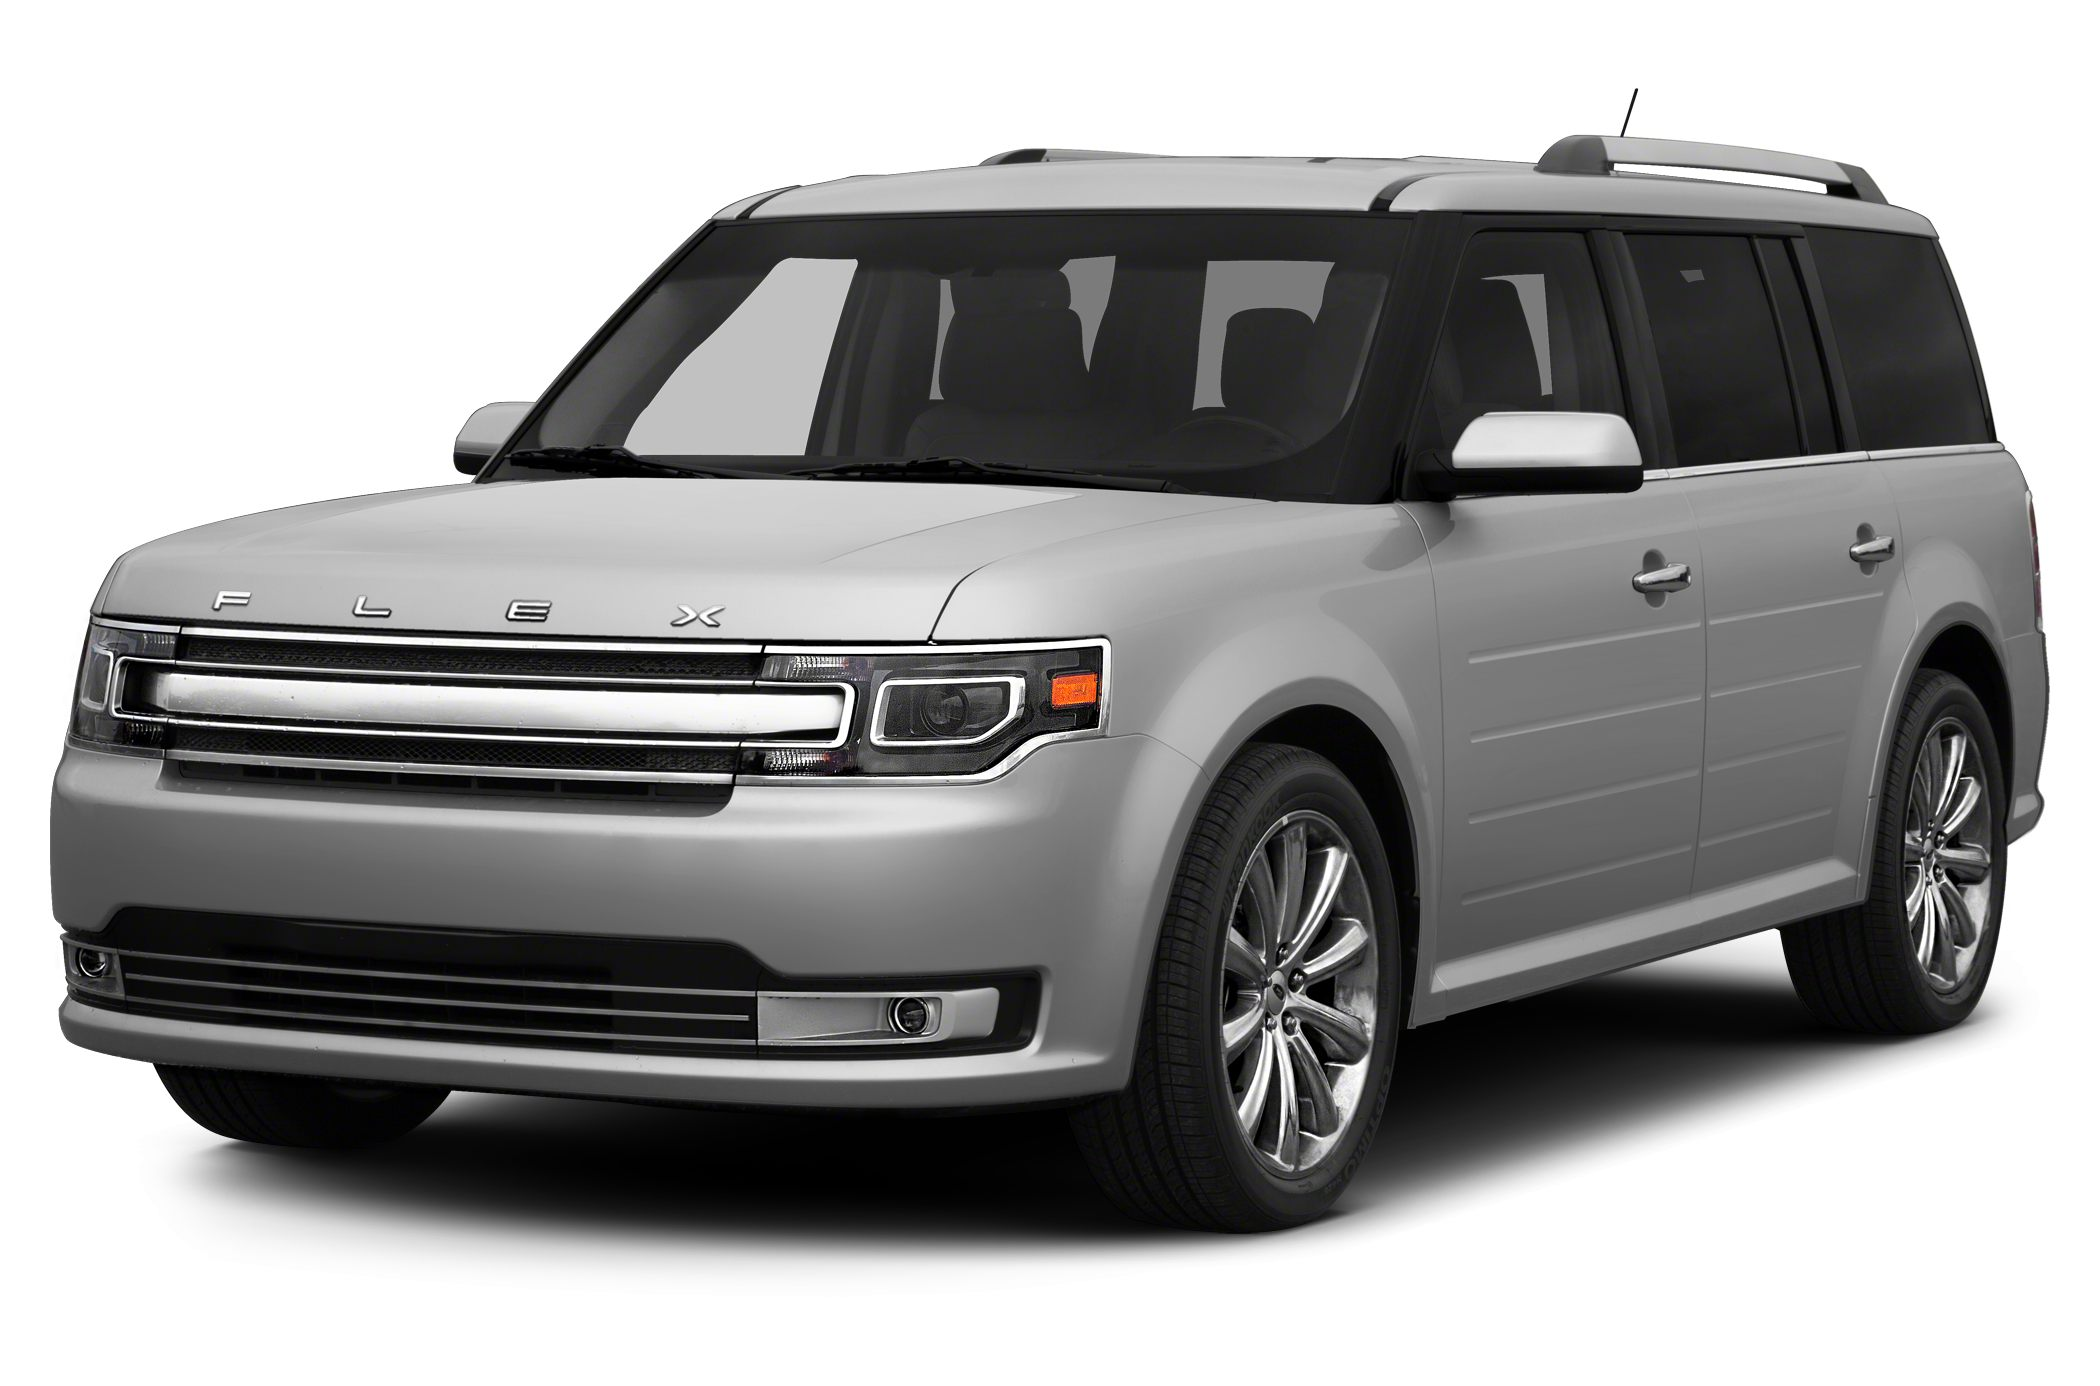 2015 Ford Flex SEL SUV for sale in Comanche for $36,880 with 0 miles